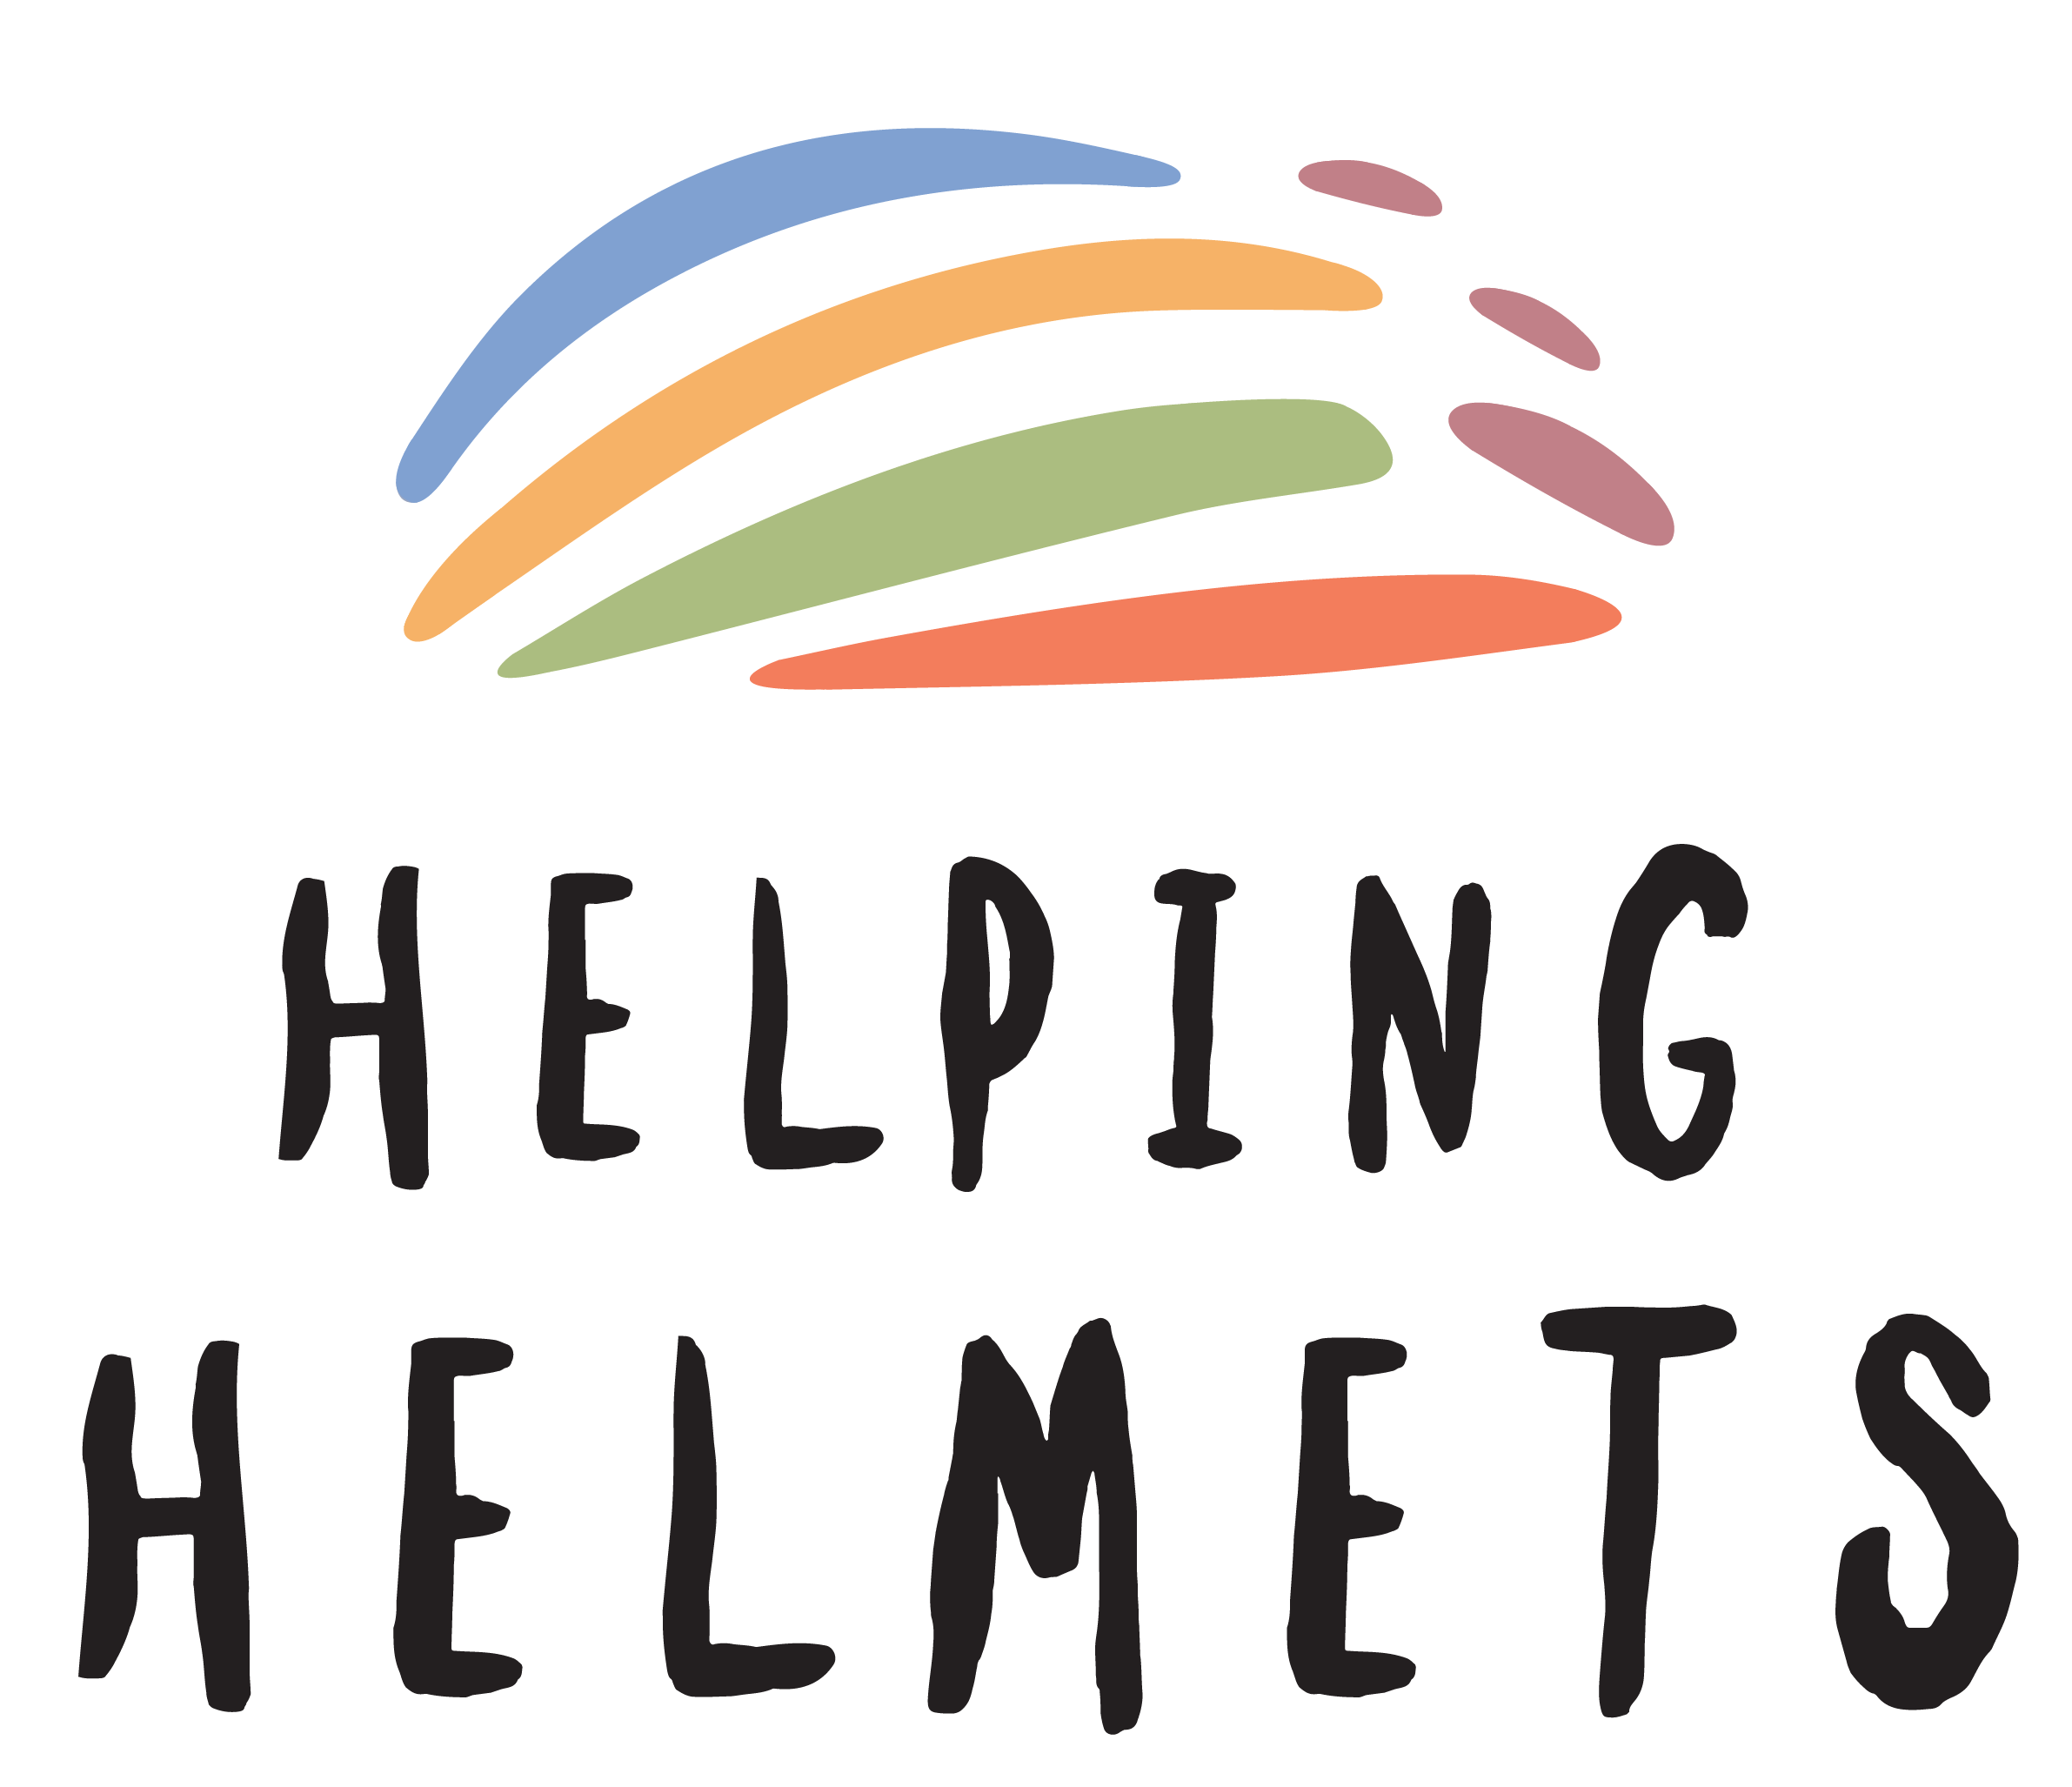 Helping Helmets